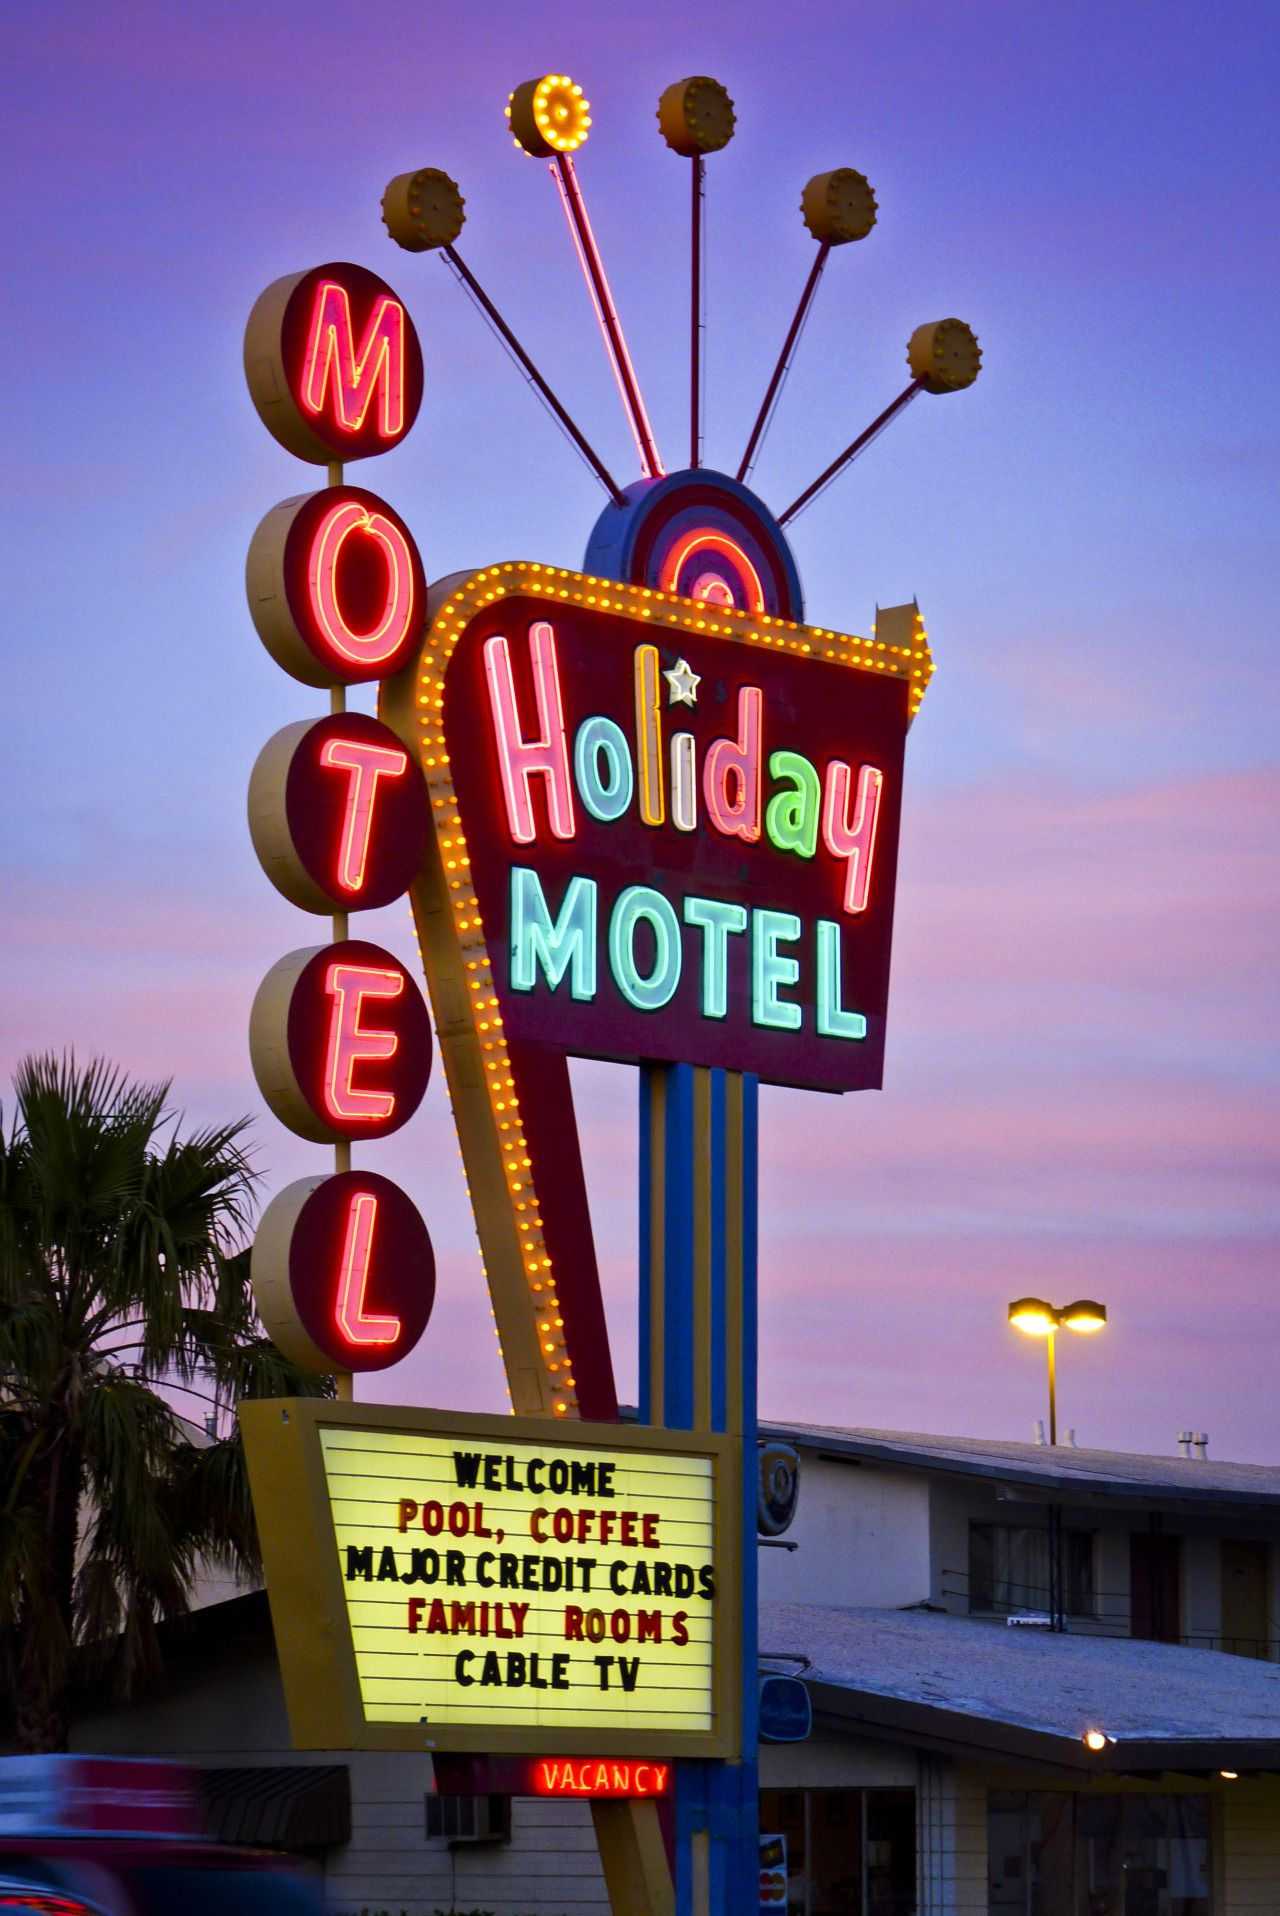 Holiday Motel, Las Vegas Boulevard | Wow, let's go there ...